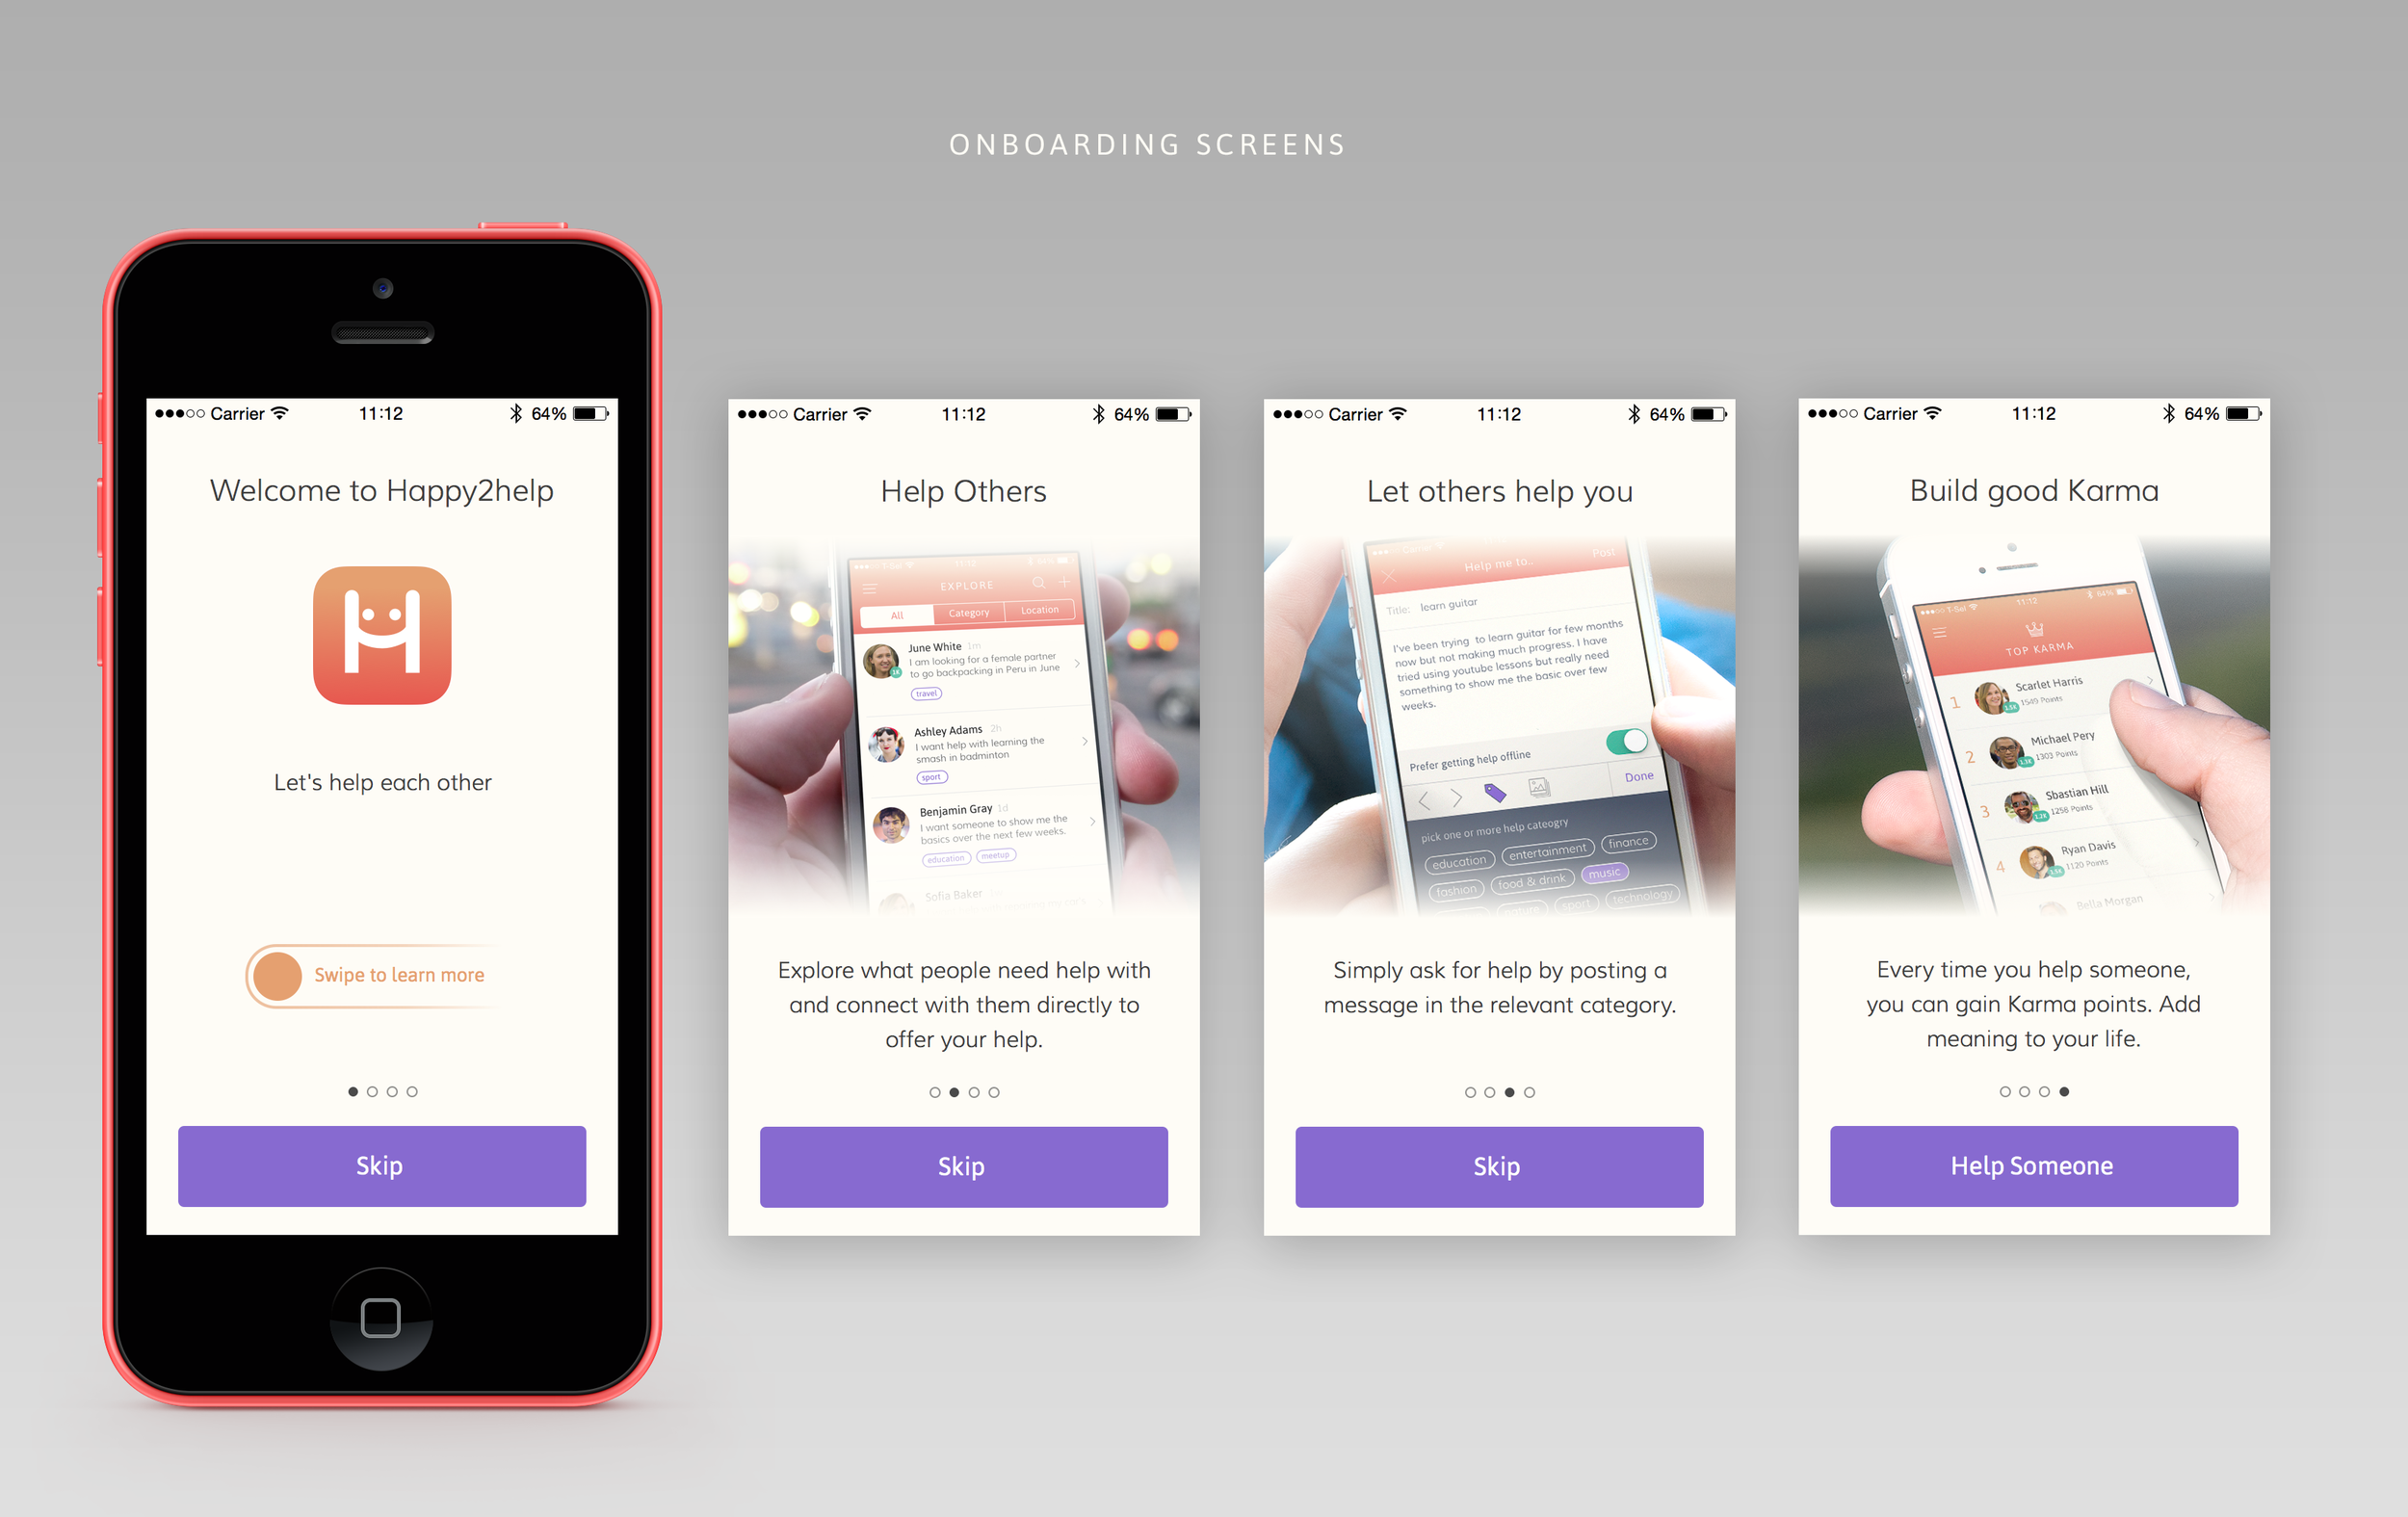 Onboarding screens focus on introducing what user can do within the app